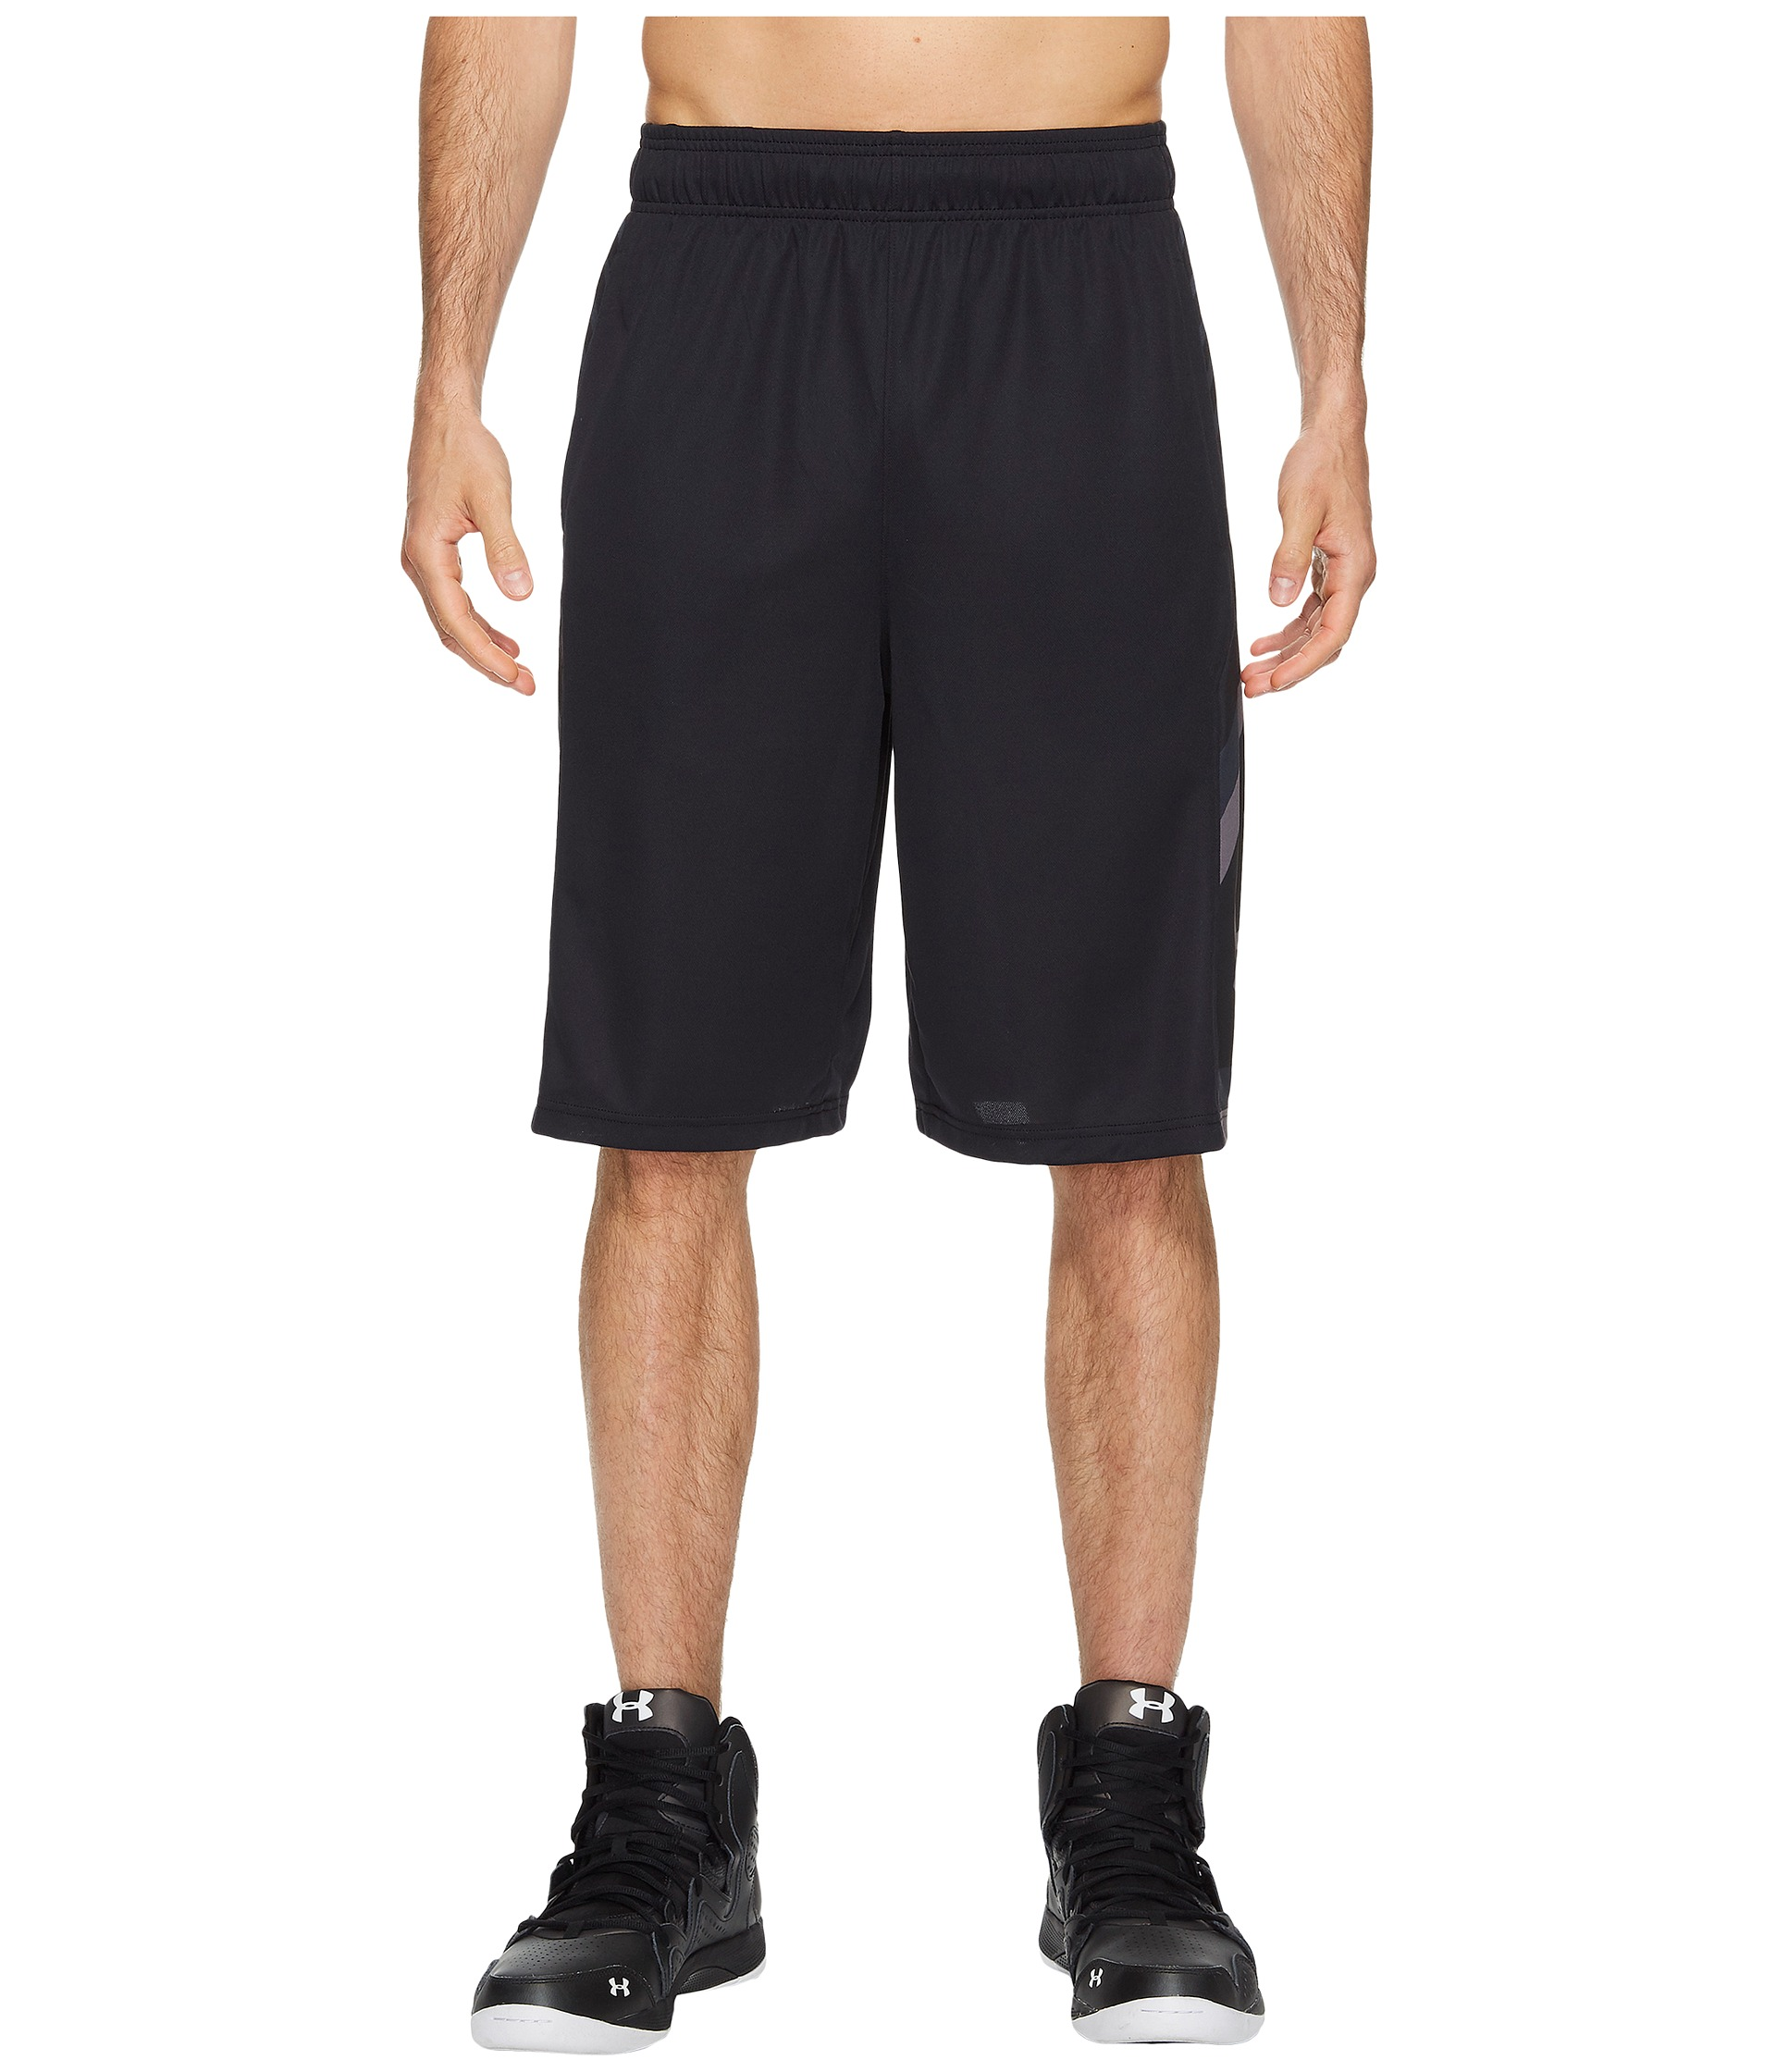 sale retailer b781c 53db9 delicate Under Armour UA Space the Floor Shorts at